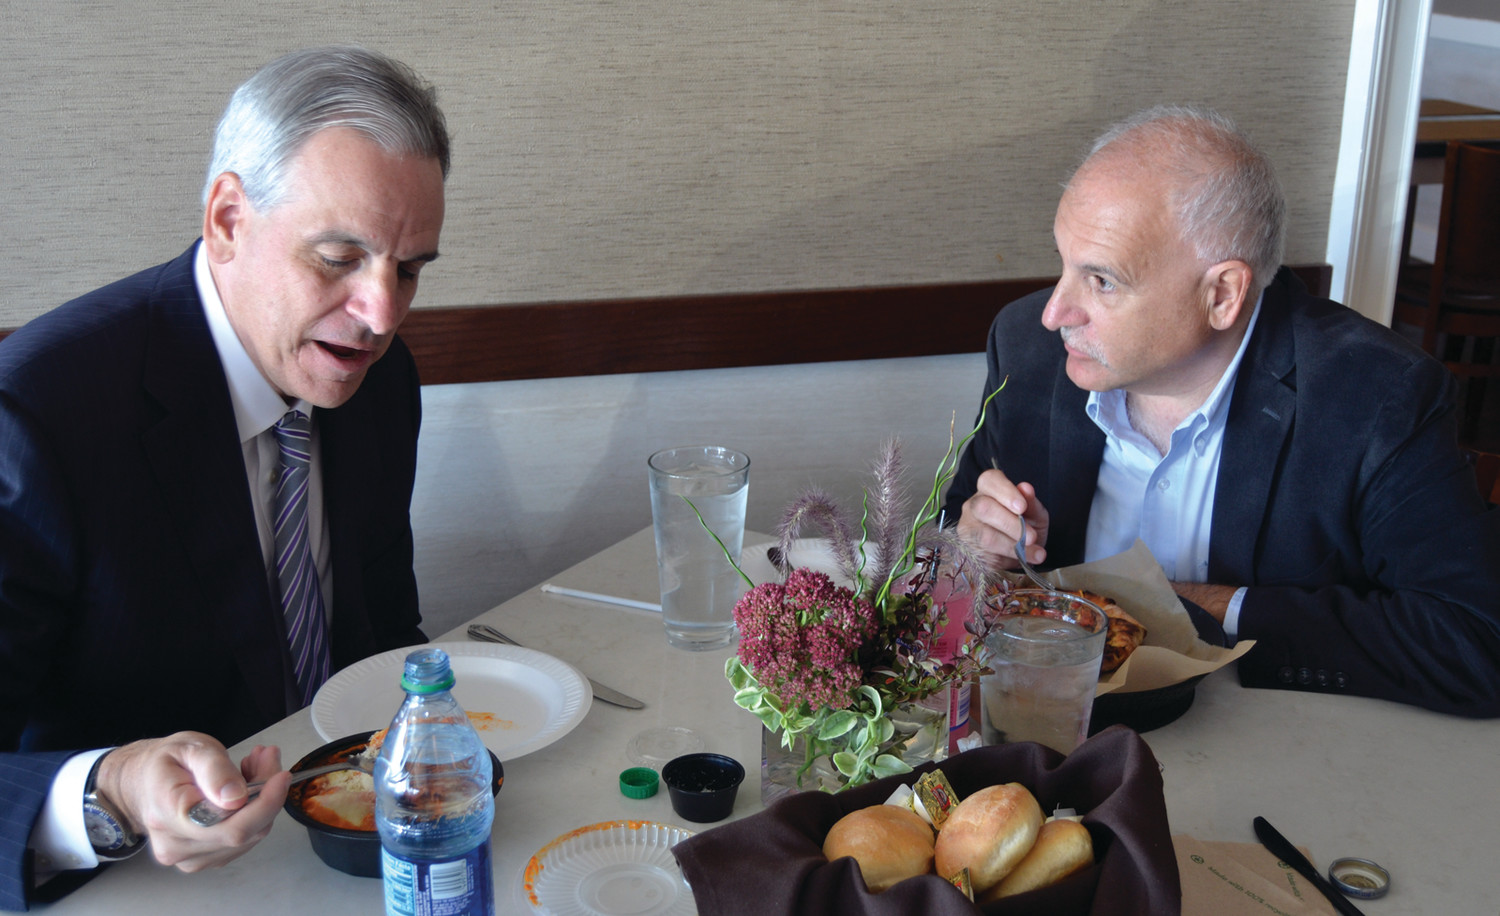 CAMPAIGN STOP: Former U.S. Attorney Peter Neronha and Johnston Mayor Joseph Polisena enjoy lunch at Luigi's during Neronha's first campaign stop.